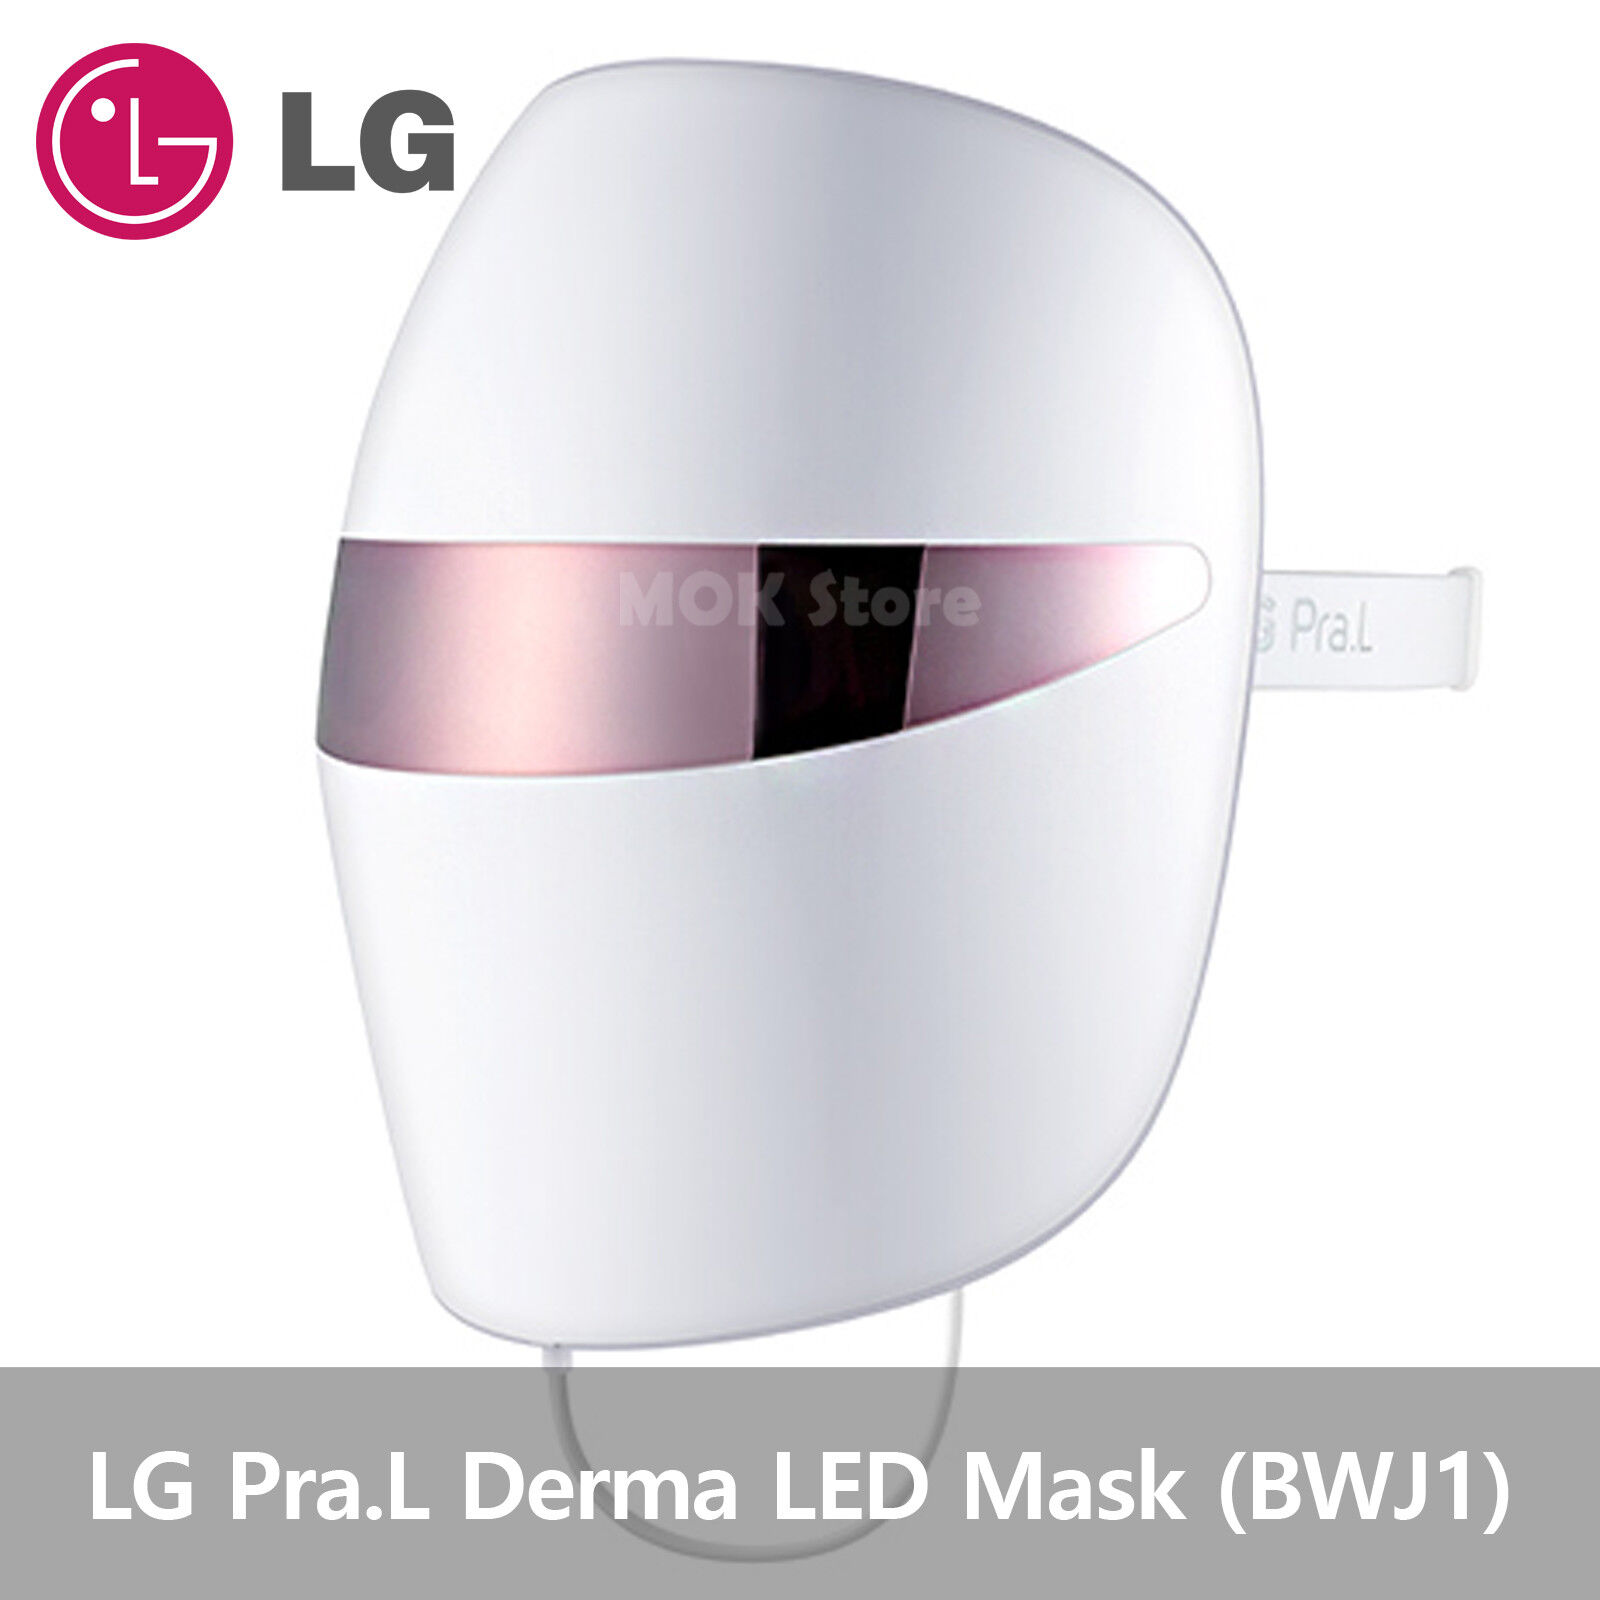 LG BWJ1 Pra.L Derma LED Facial Mask Home Aesthetic Beauty ...